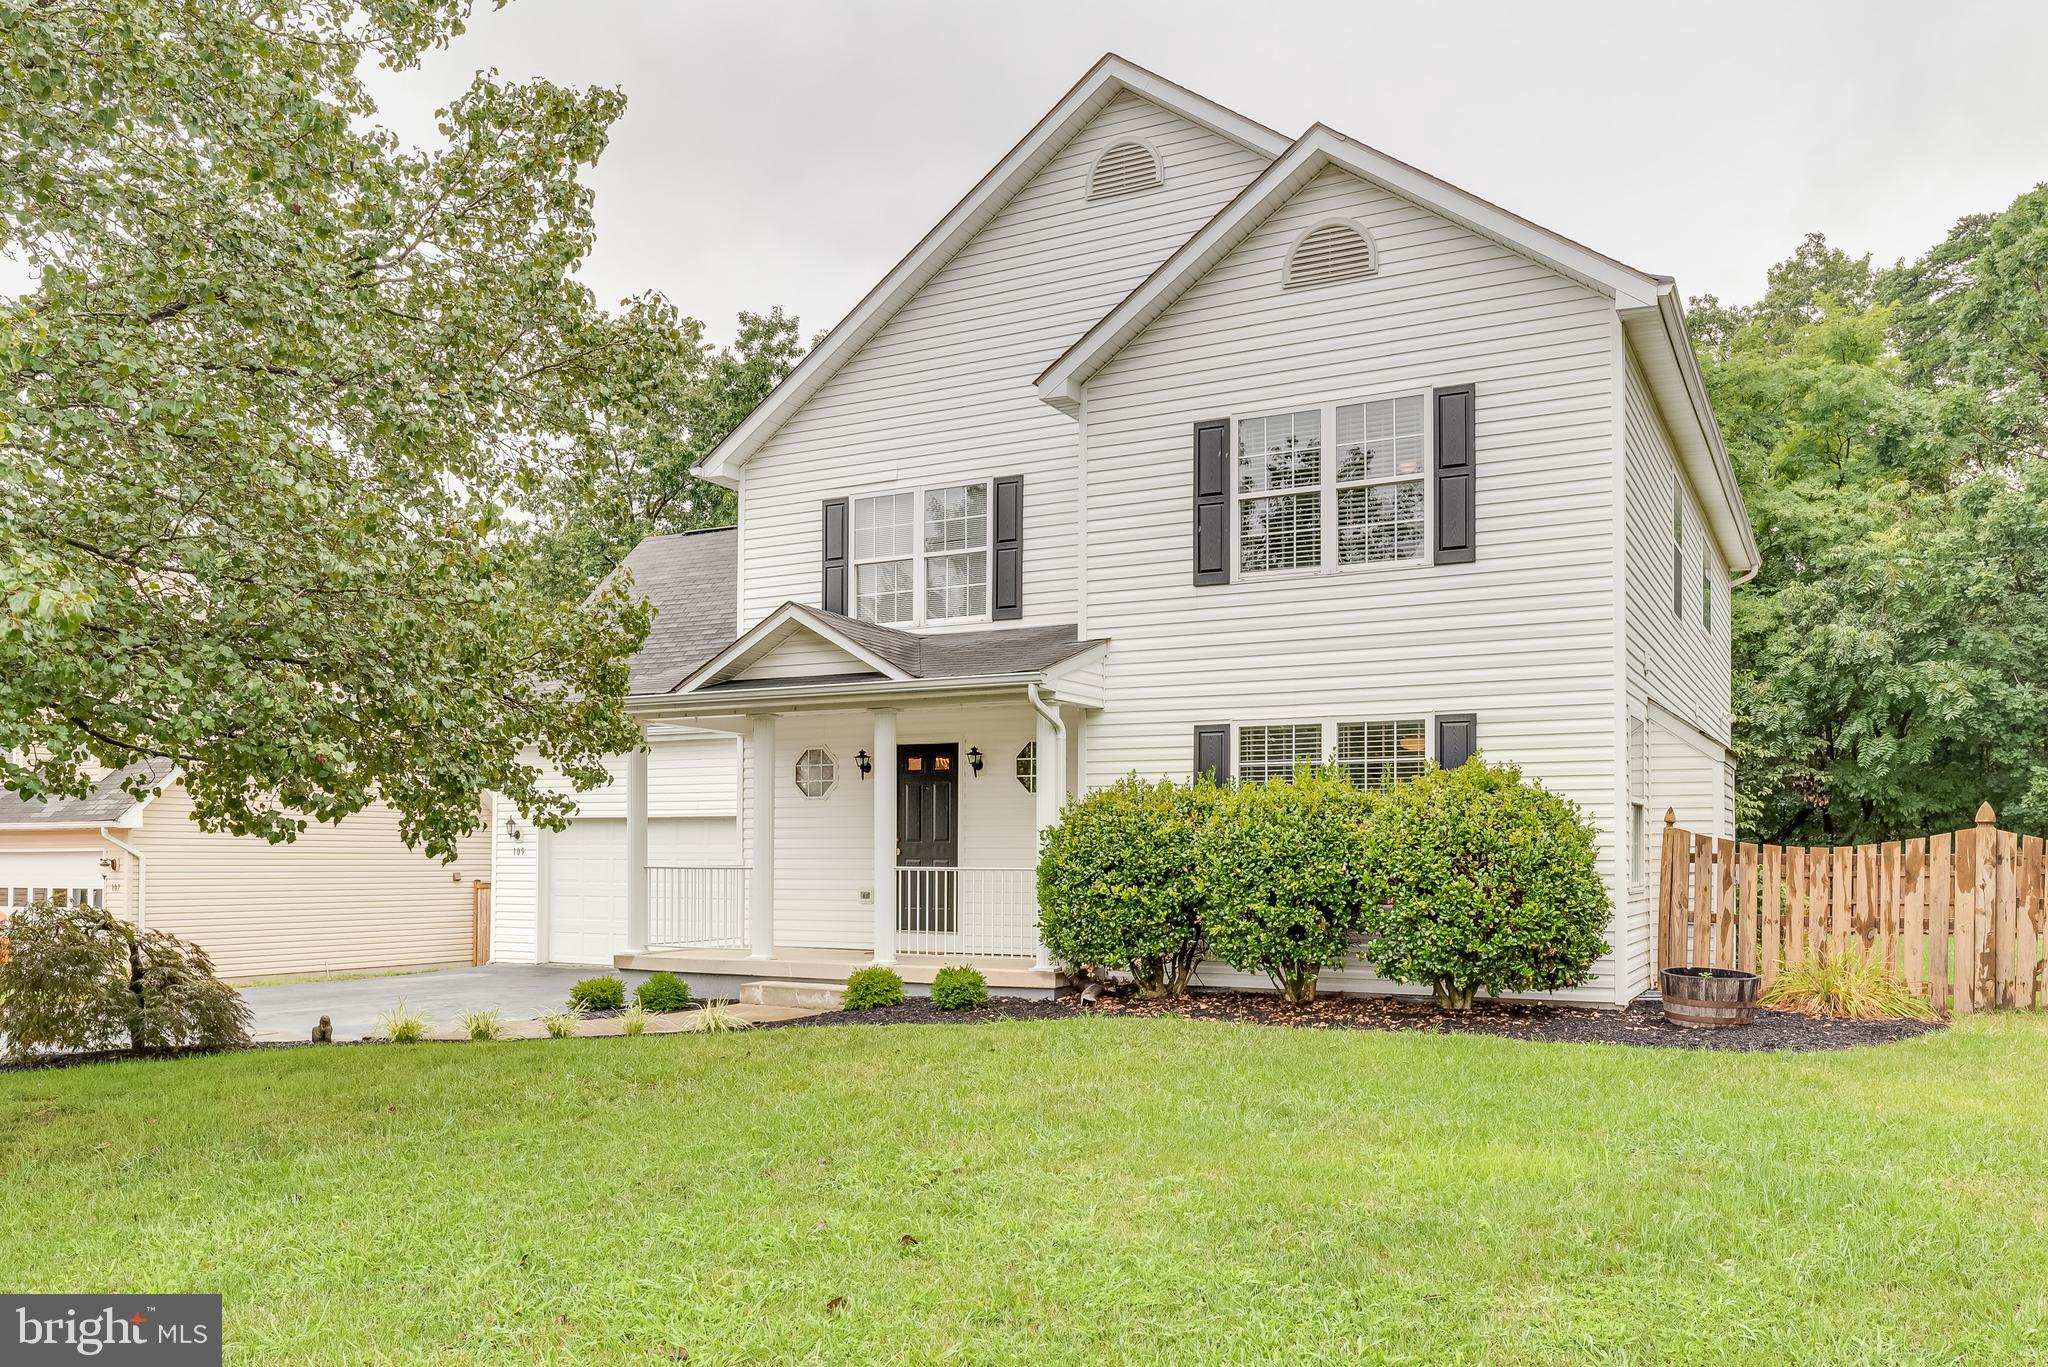 You'll want to put this one on your list! This spacious colonial home is located in the convenient n